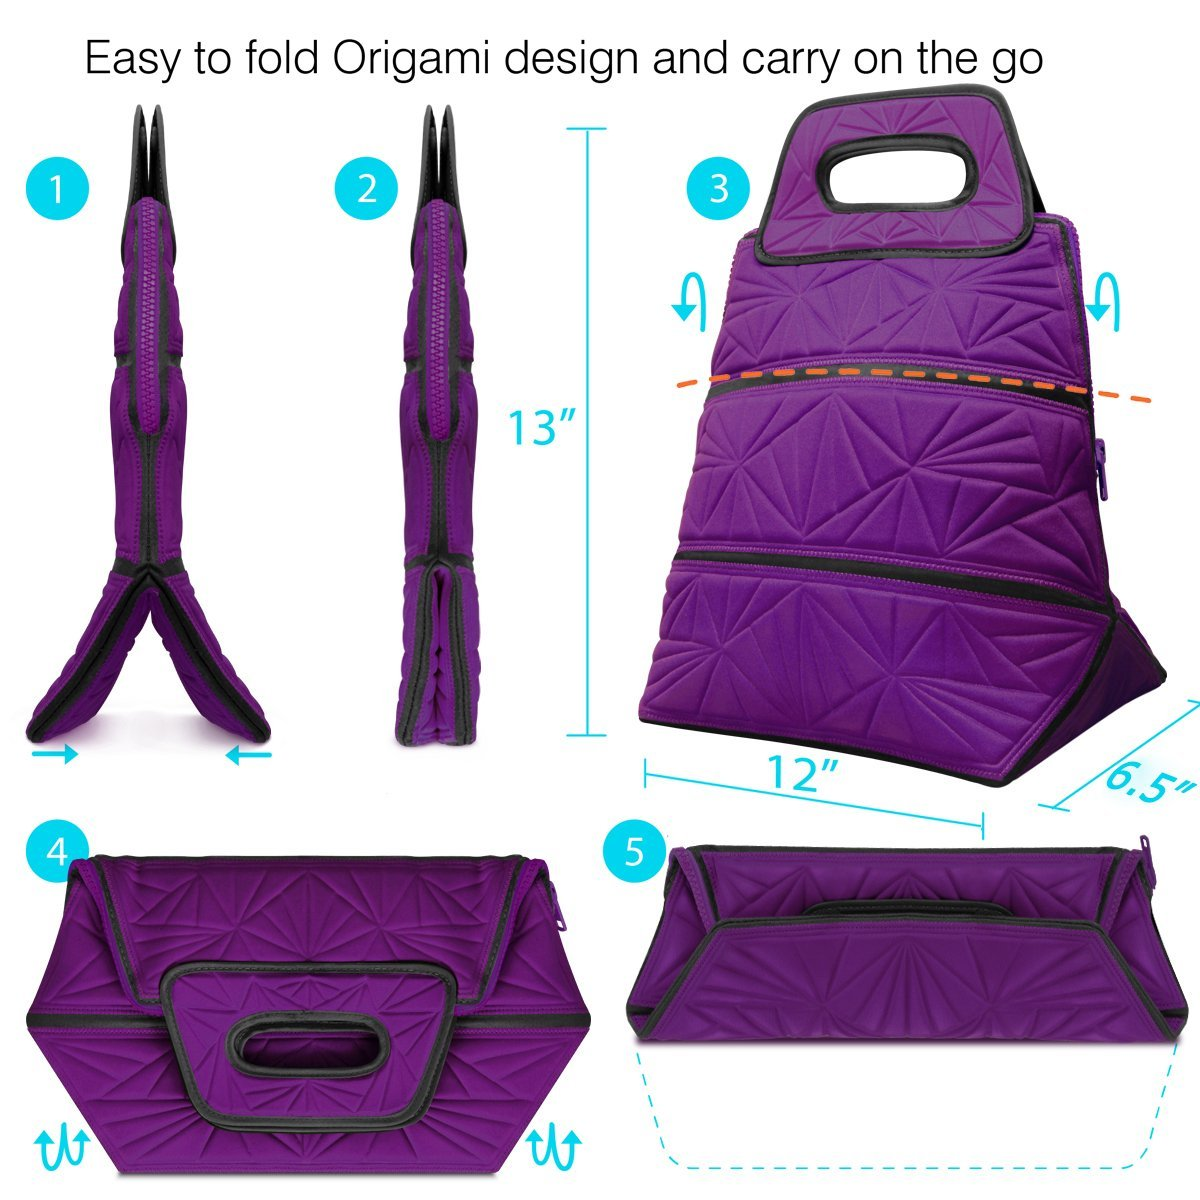 Metric USA Lunch Tote Bag with Odor-eliminating Pouch, Reusable & Portable Insulated Lunch Box Cooler Bag to Work, School, Picnic & Food Holder with Zipper stash pocket for Women, Men and Kids(Purple)